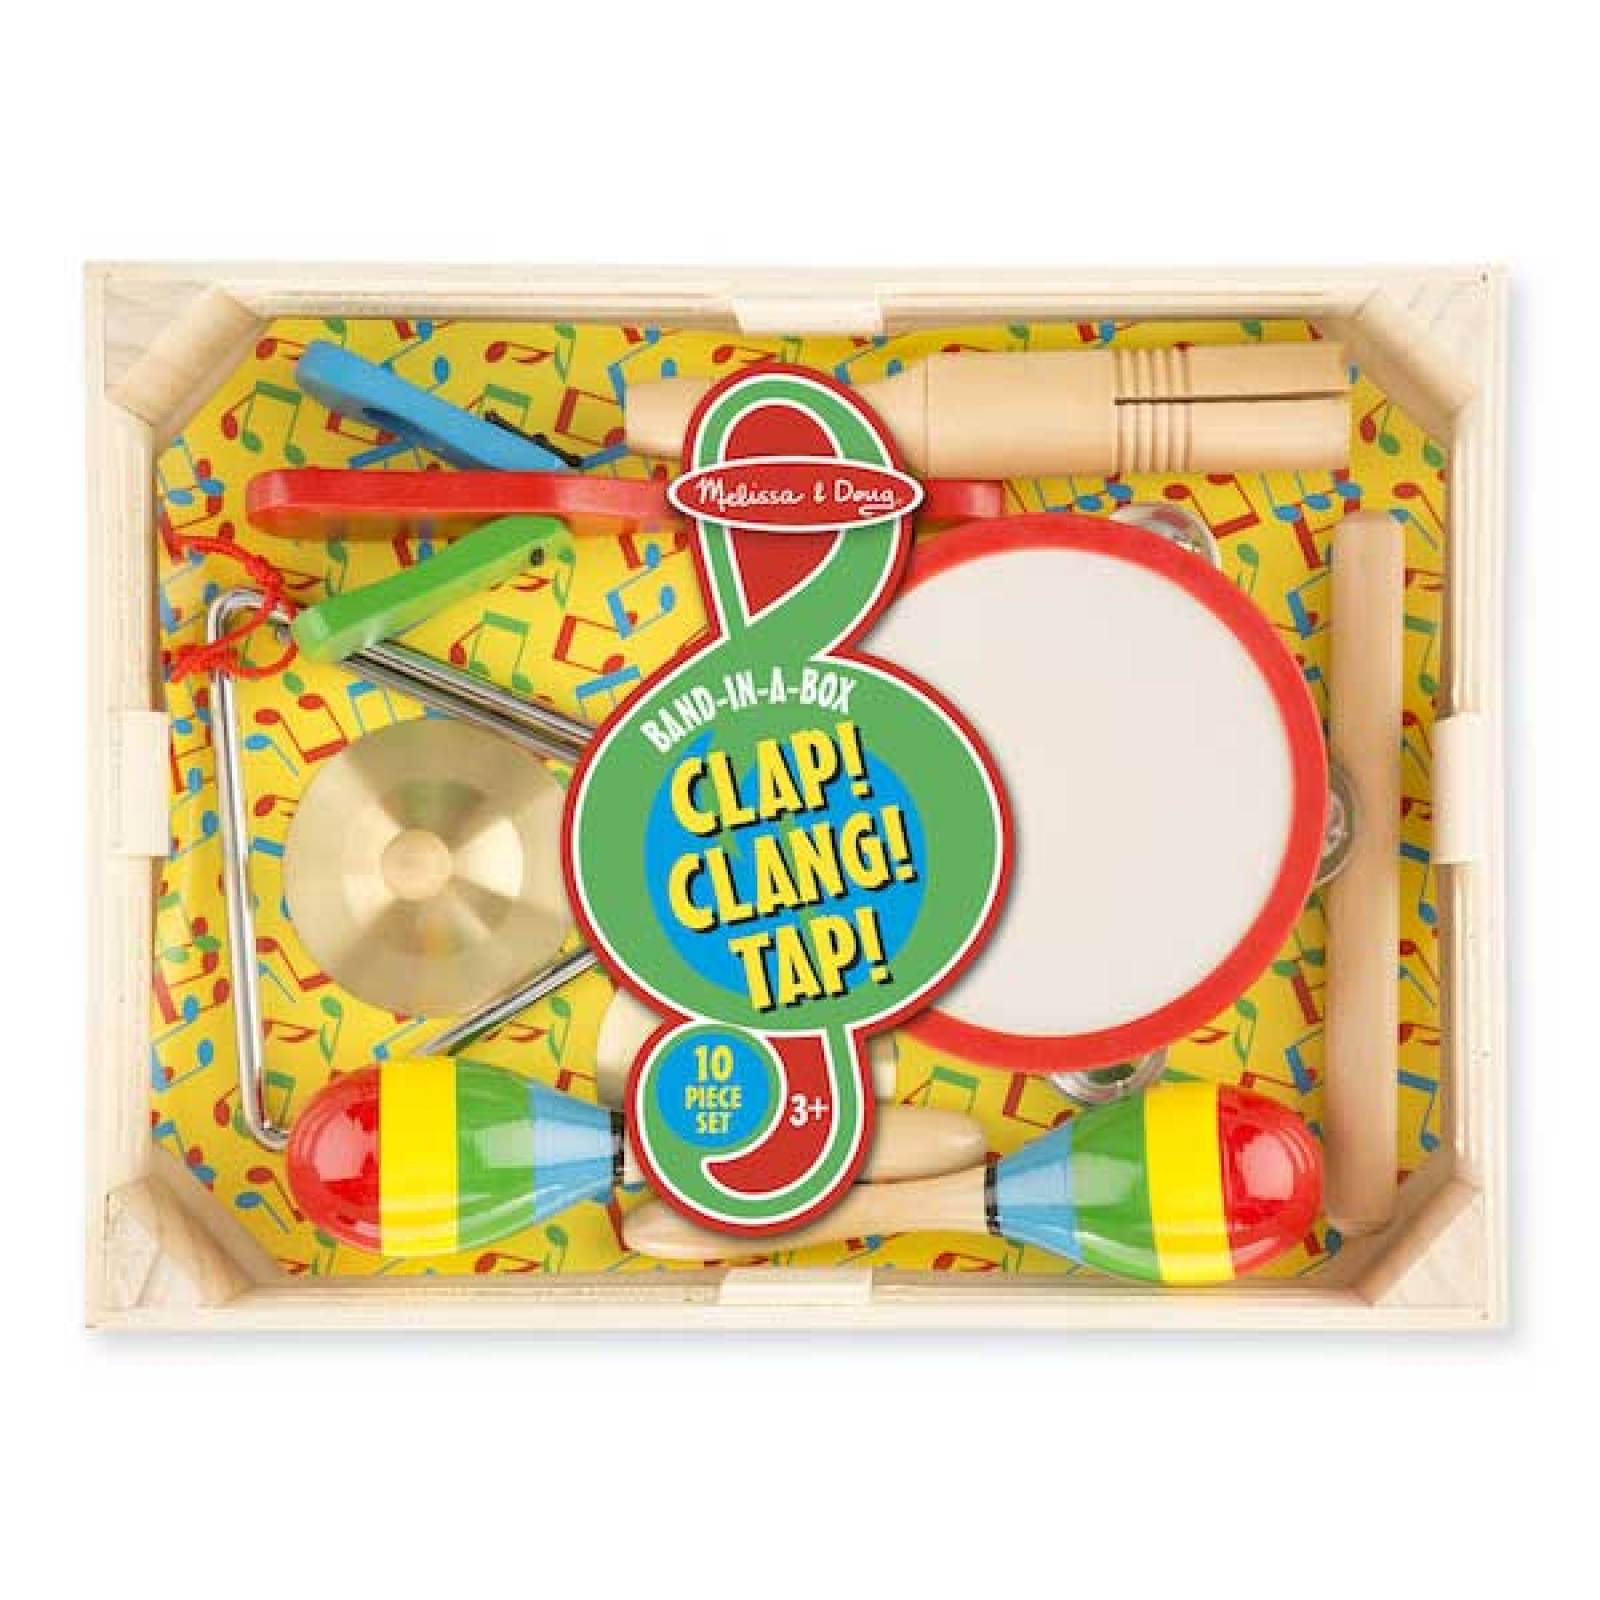 Band In A Box - Clap! Clang! Tap! By Melissa & Doug 3+ thumbnails